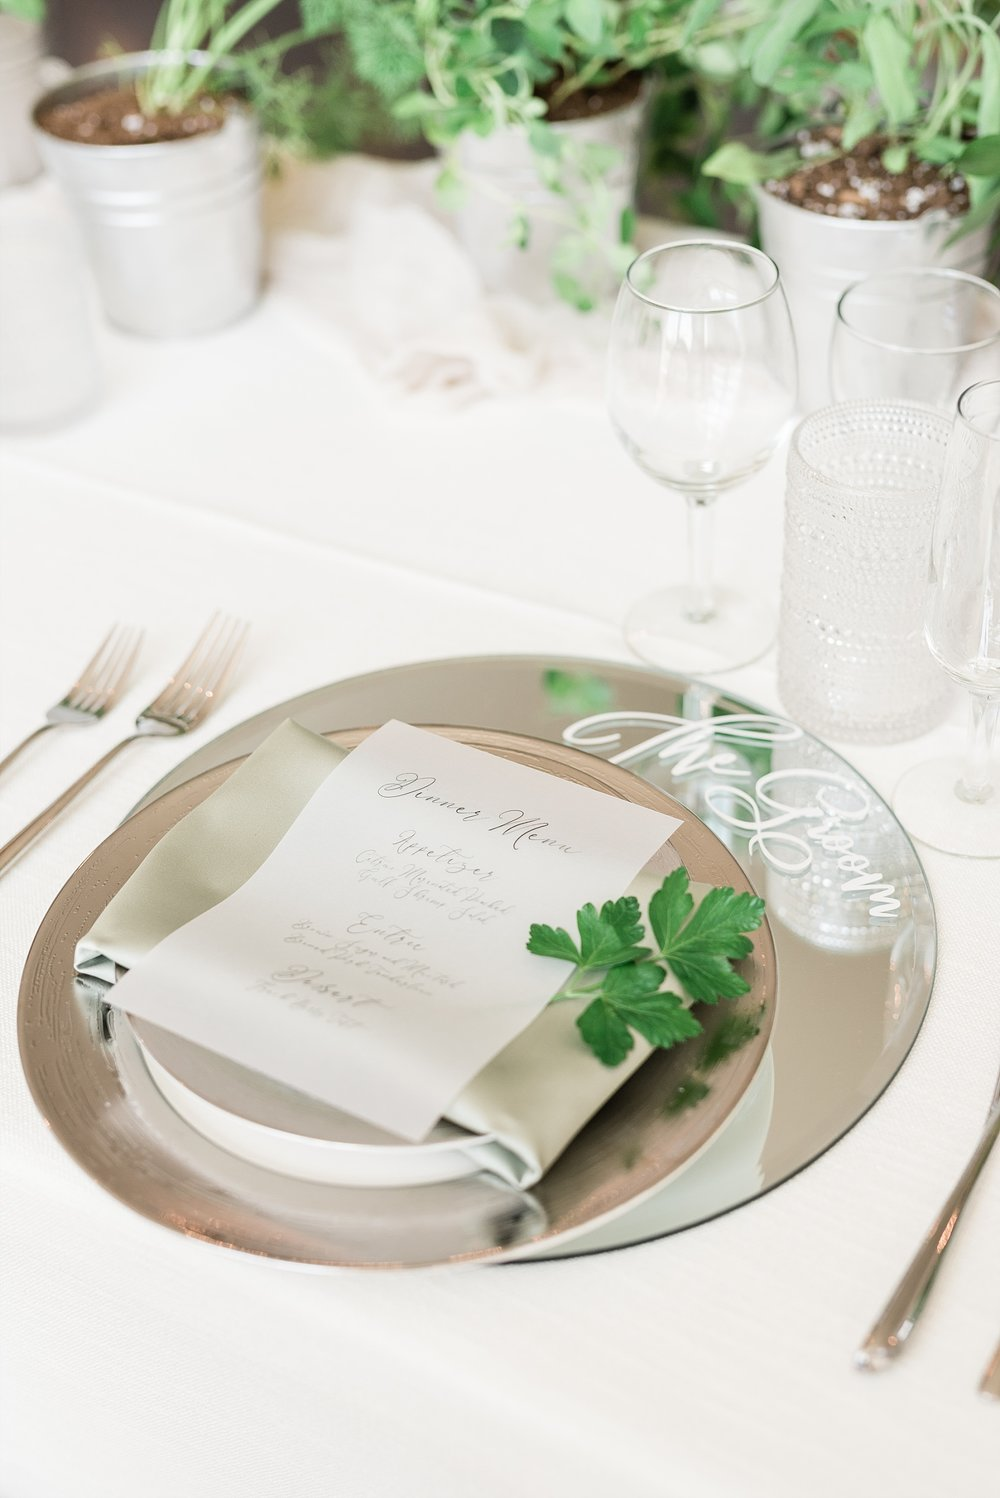 Textural Organic Wedding in All White Venue by Kelsi Kliethermes Wedding Photographer - Missouri, Midwest, and Destinations_0098.jpg